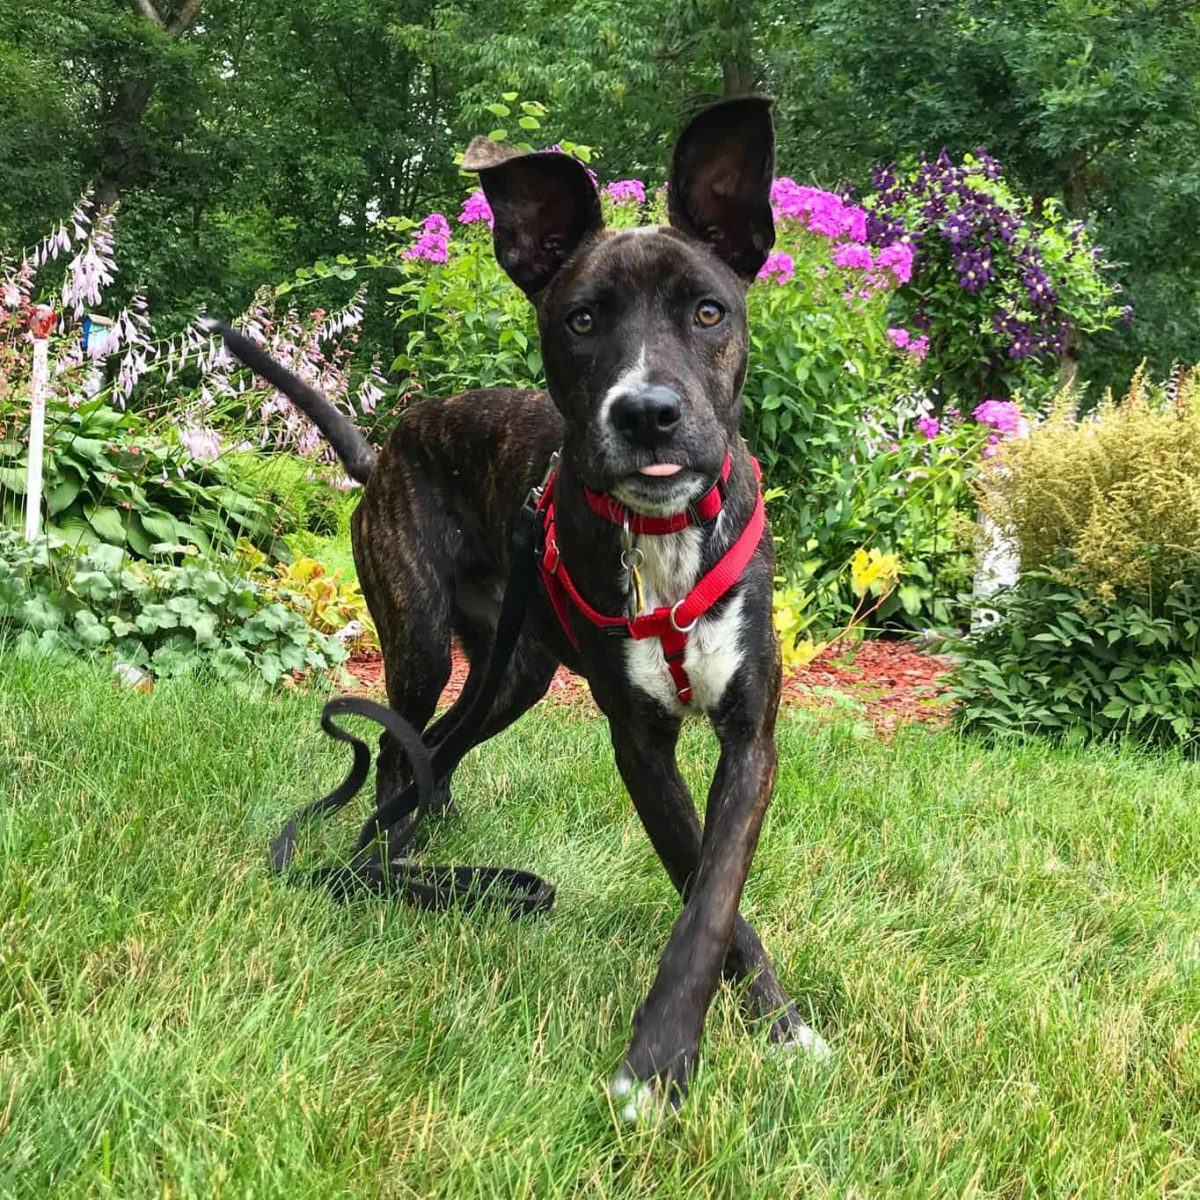 Brindle puppy in a red harness in front of a flower garden